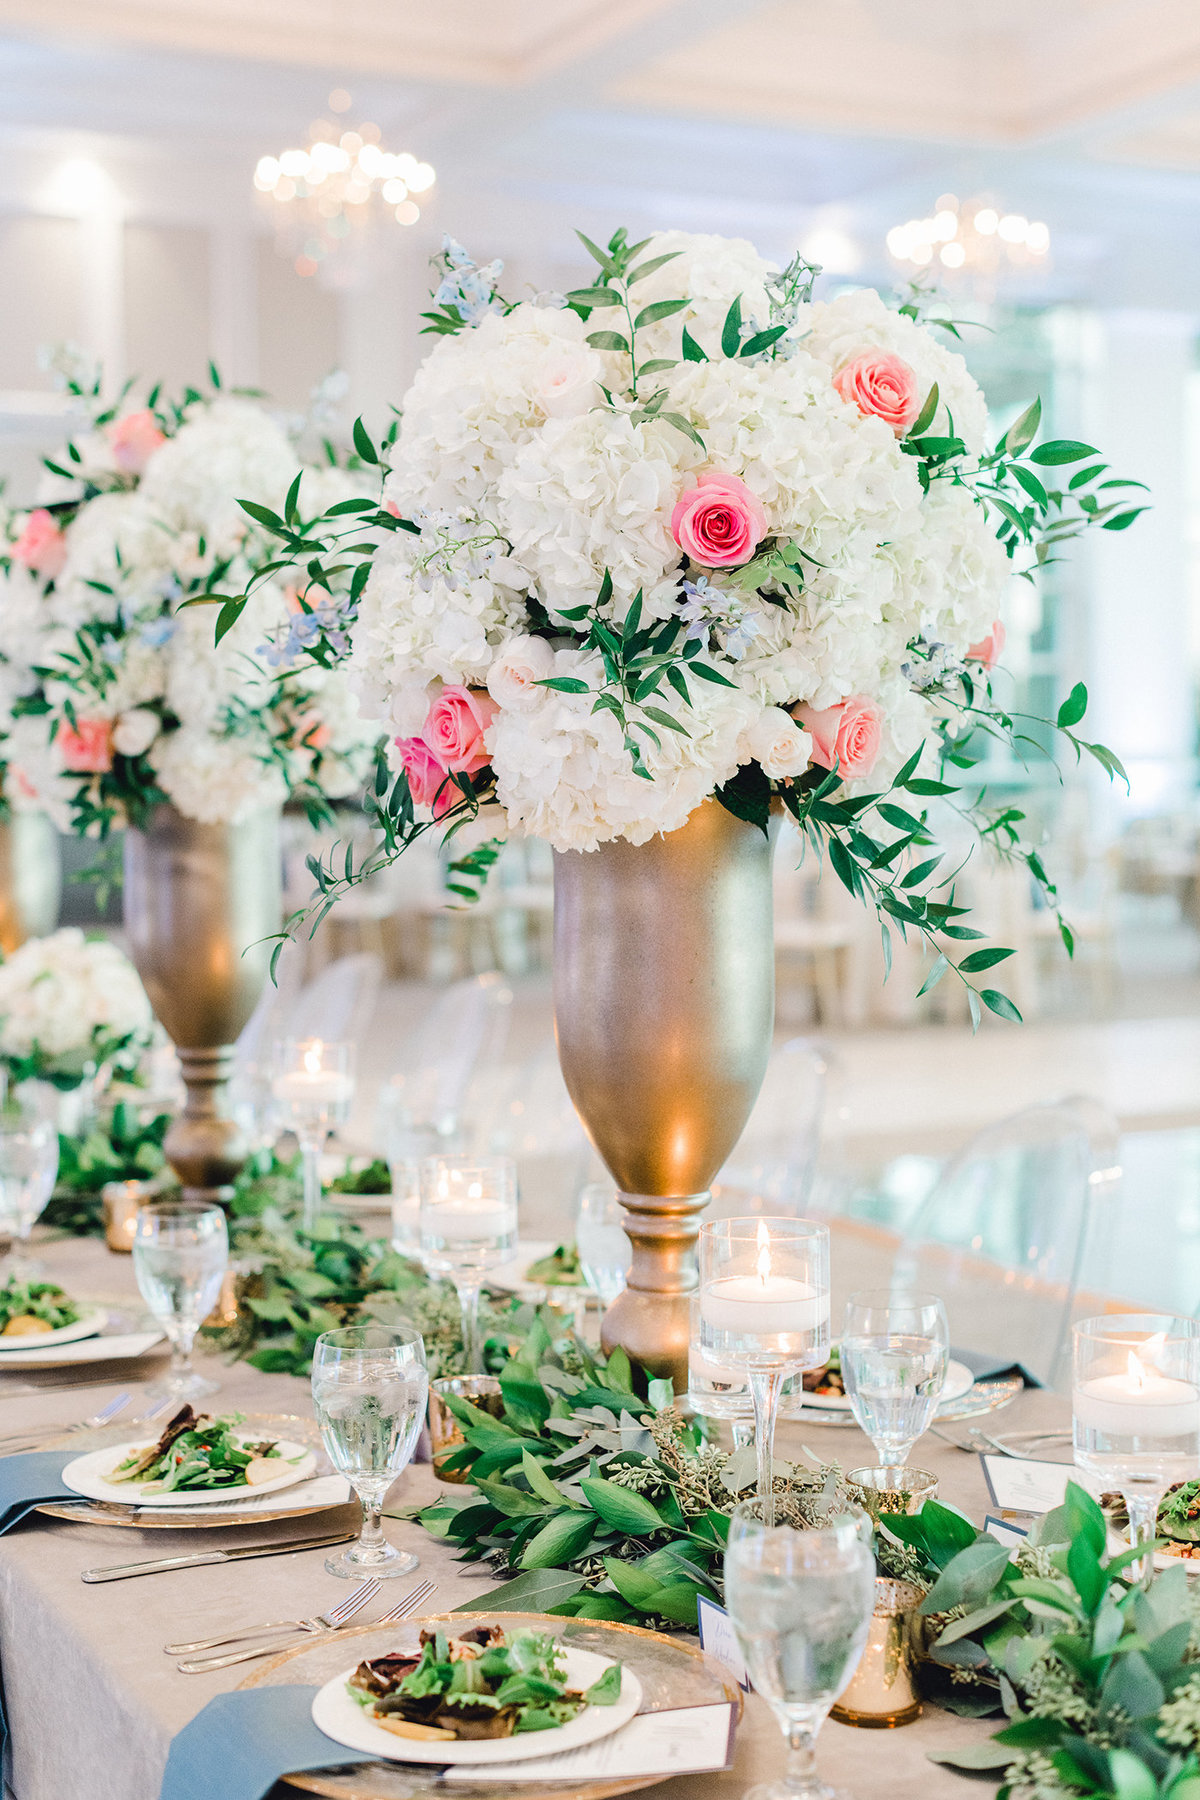 Dallas Wedding Floral Design - A Stylish Soiree - Dallas Wedding Florist - 451